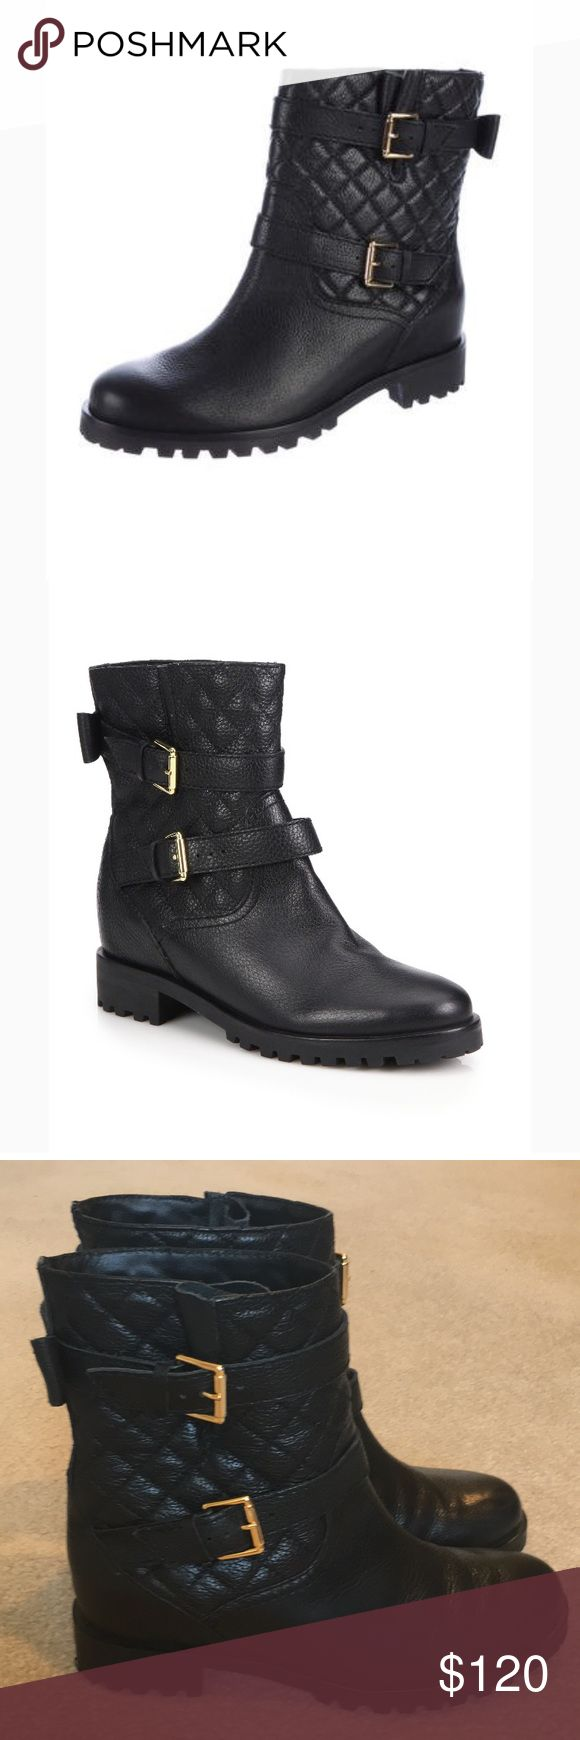 Used Kate Spade Quilted Black Leather Ankle Boots Only worn a few times, Kate Spade quilted leather ankle boots. Missing gold Spade accent on back otherwise In excellent , clean condition. Super cute to wear with leggings and an oversized Knit sweater or with tights and your favorite skirt! Size 8 Kate Spade Shoes Ankle Boots & Booties